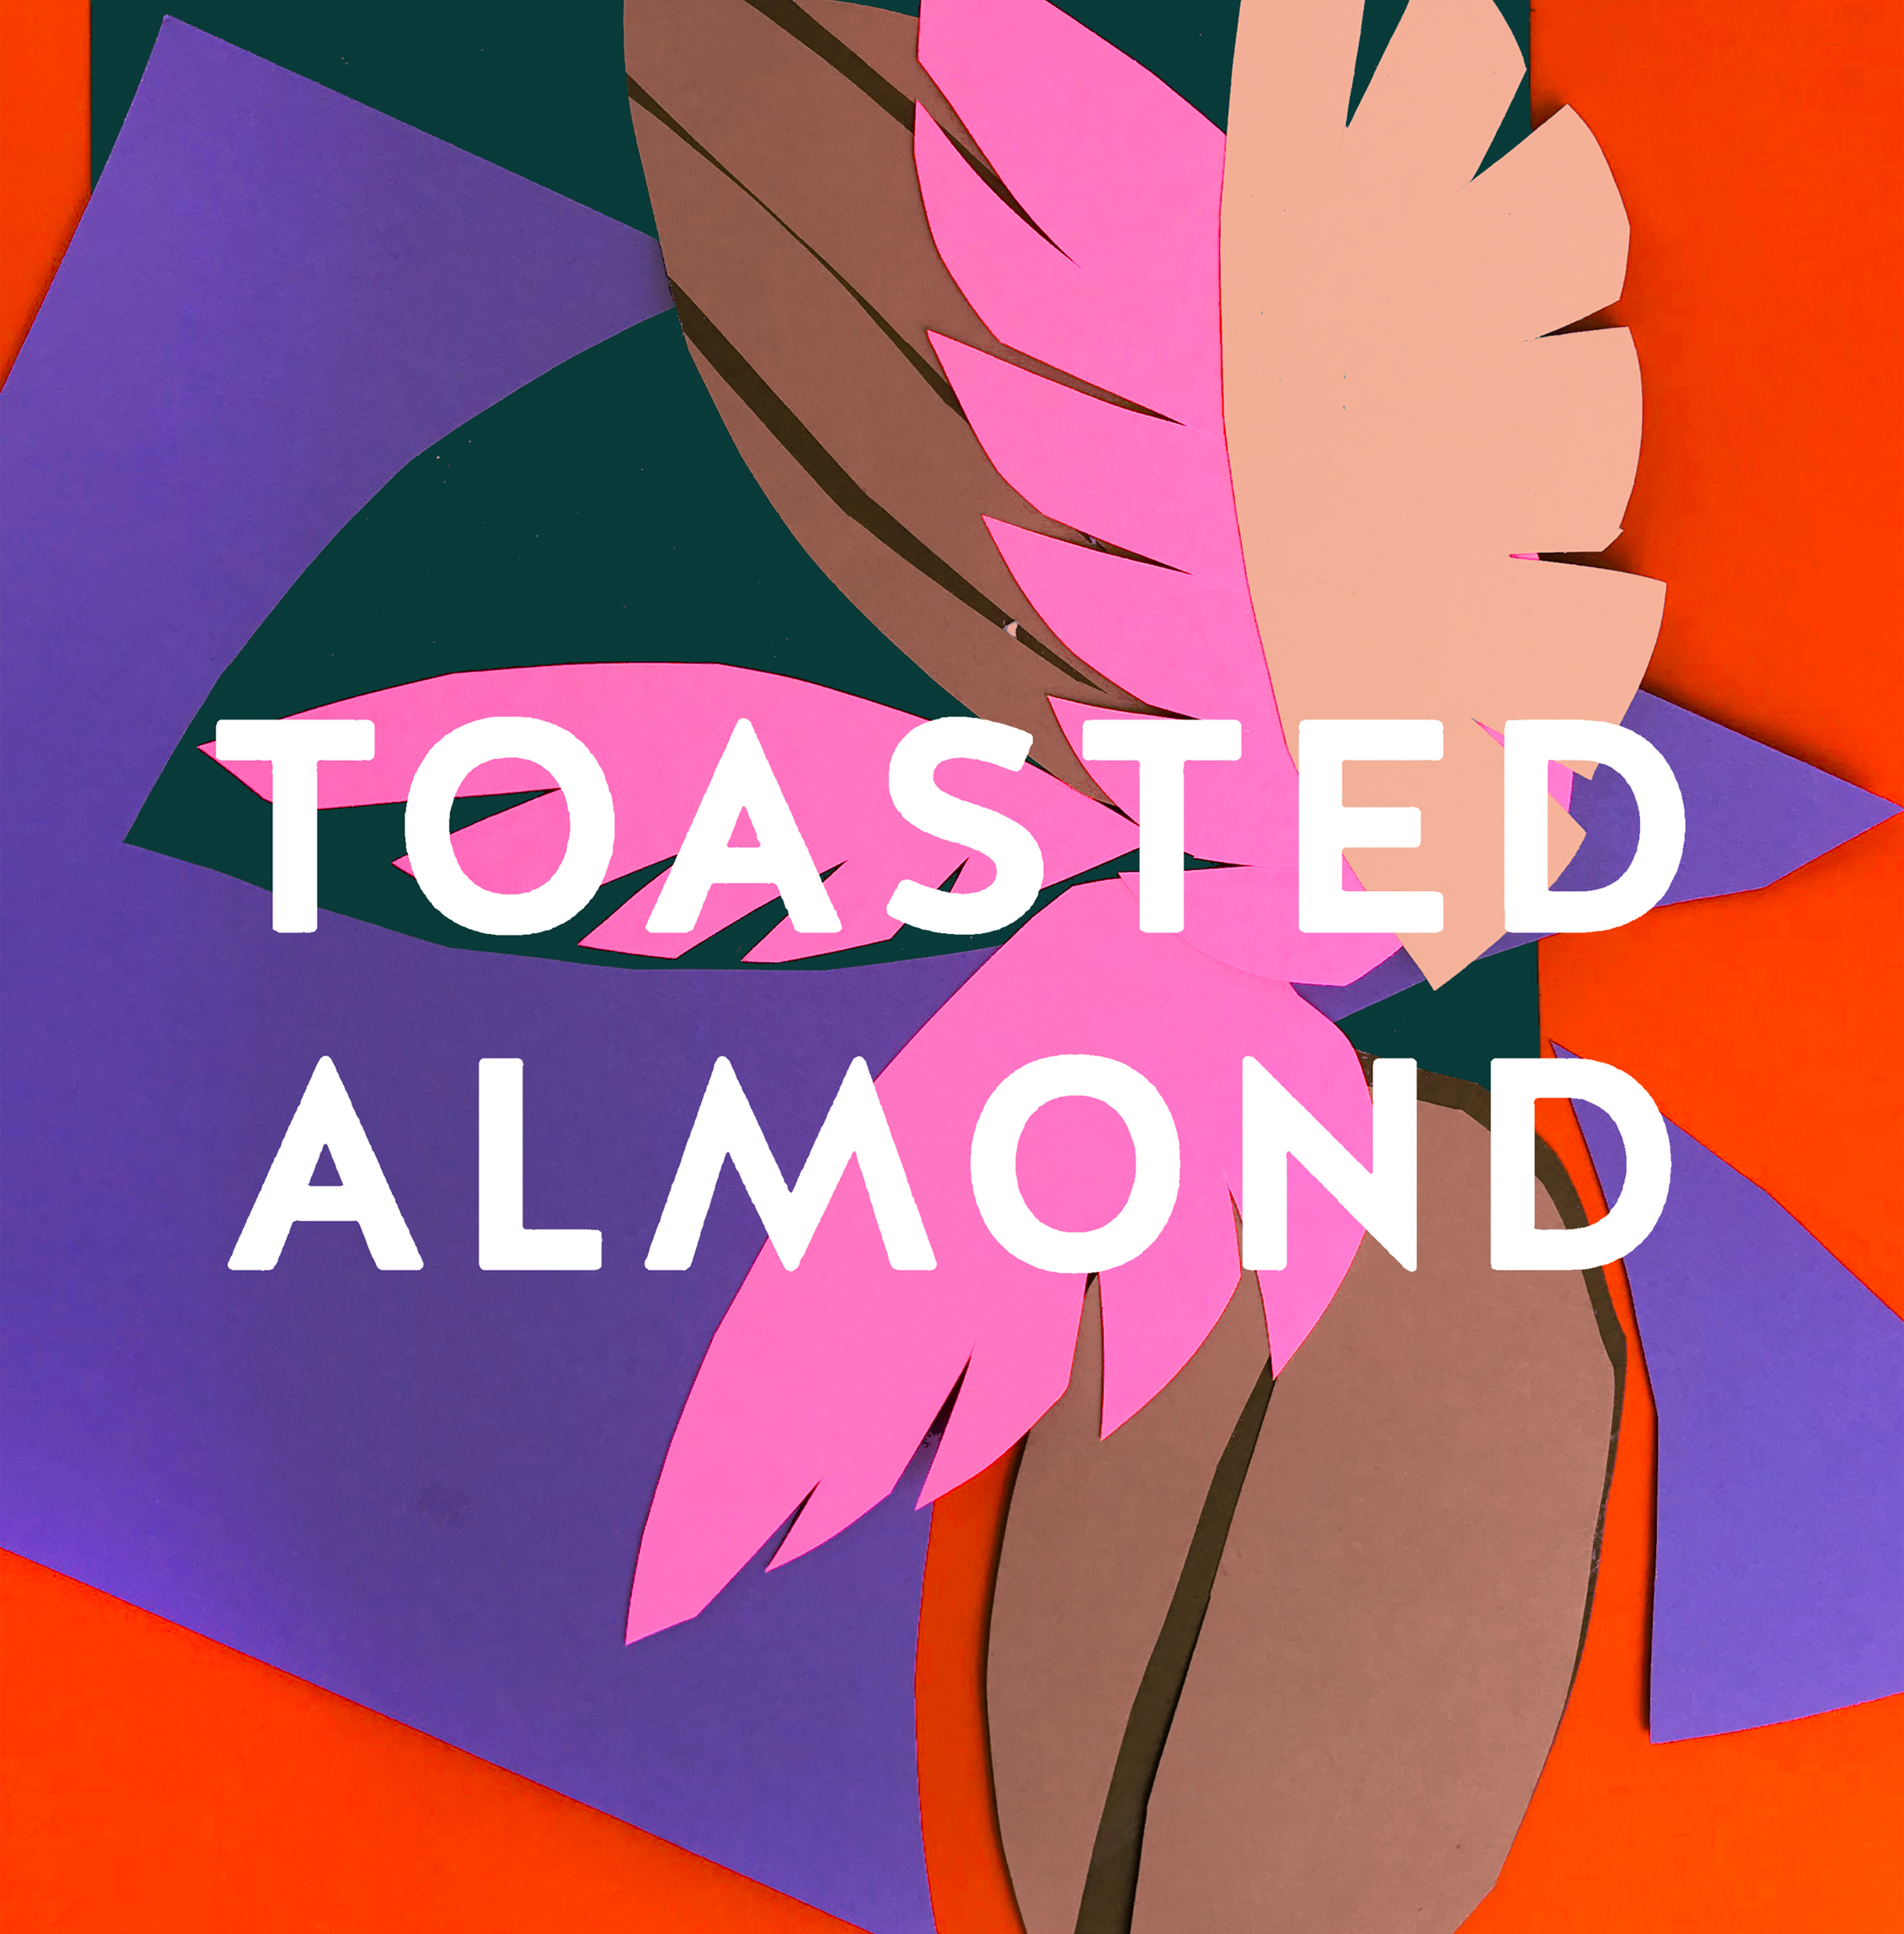 stina-persson-toasted-almond-coffee.jpg